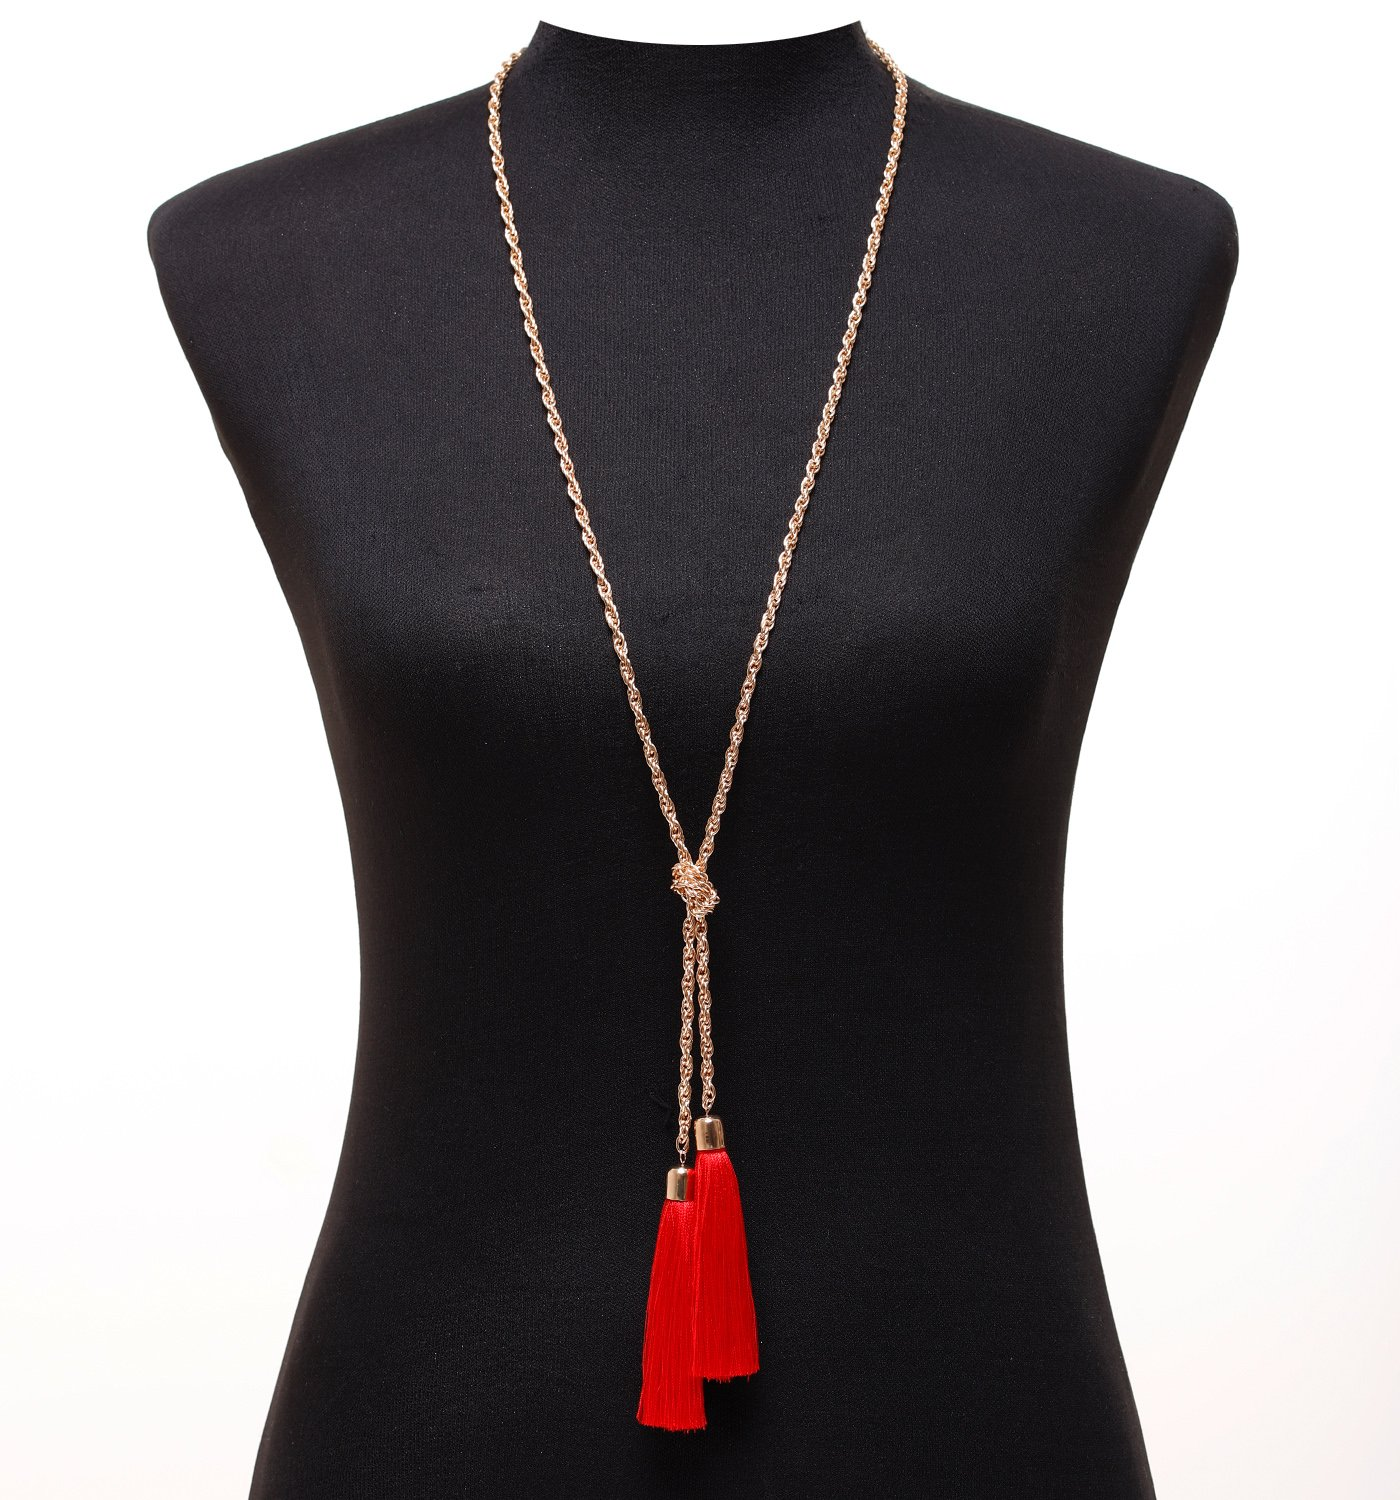 Lariatneck Long Tassel Necklace Y Shaped Adjustable Knot Chain Tassel Pendant for Women (Gold with Red Tassel)